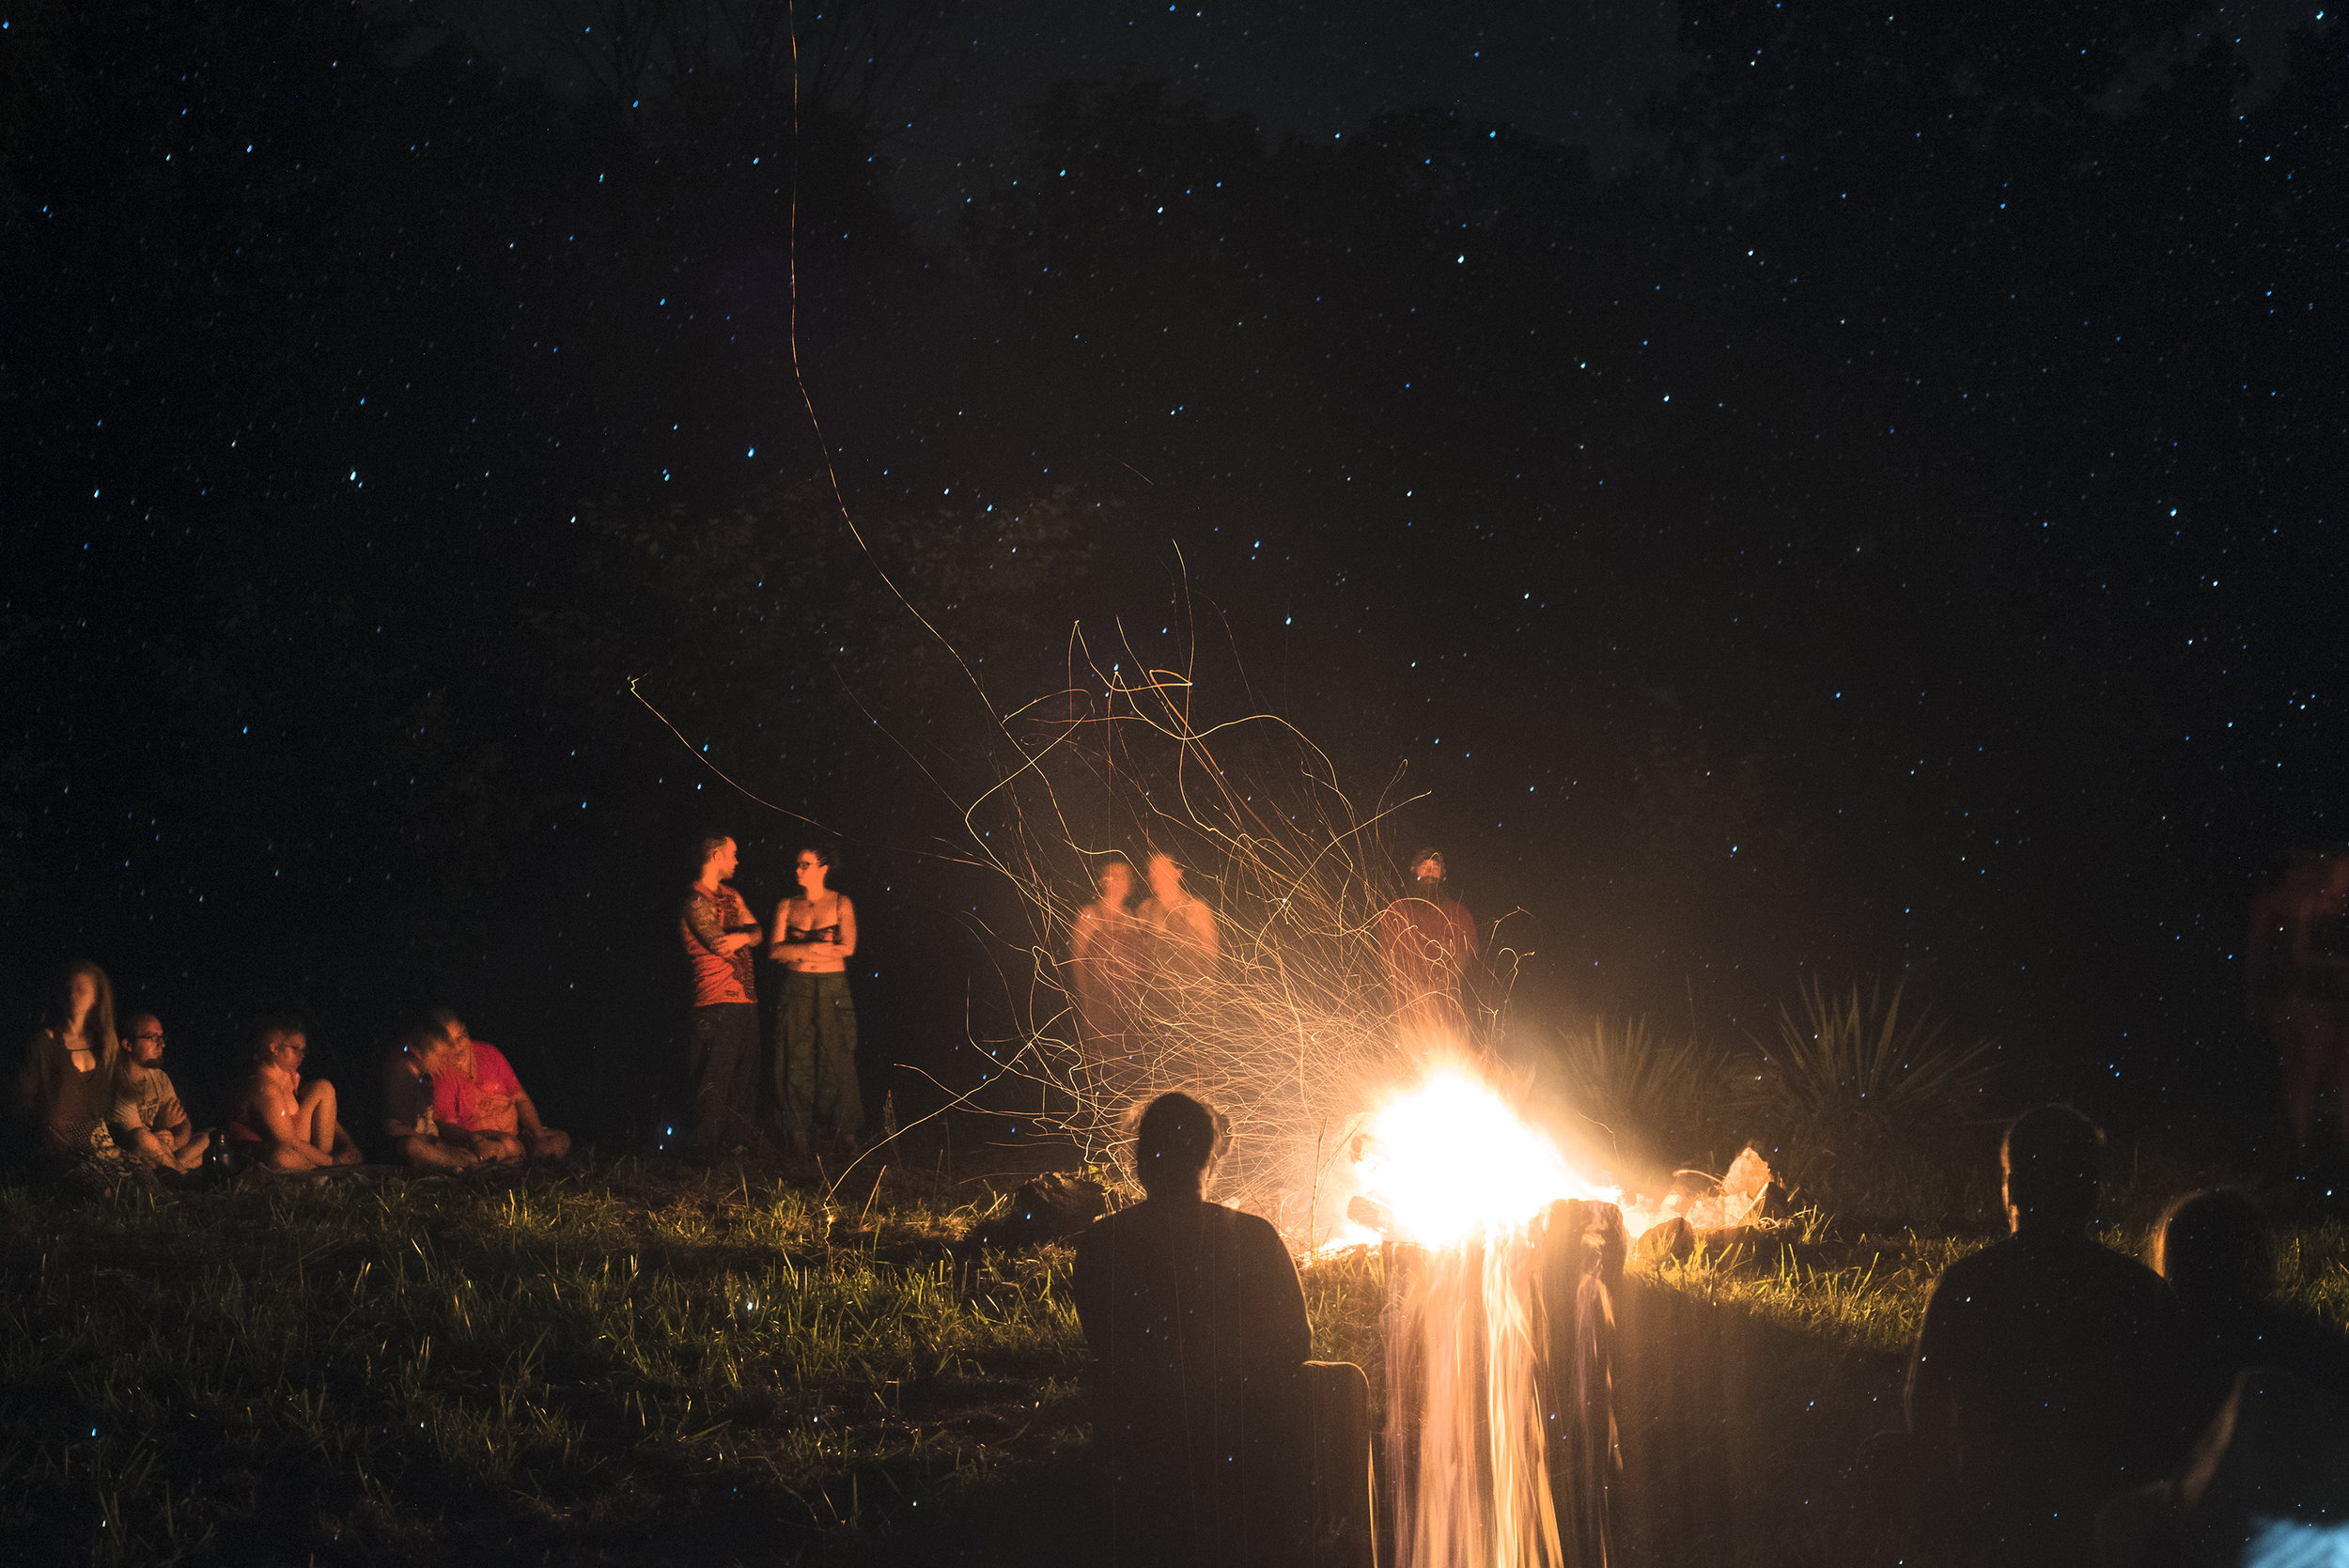 Pagans gather in a circle around a fire before a Thelemic ritual to the goddess of the sky, Nuit, at Oak Spirit Sanctuary on Sunday, August 21, 2017. The goddess calls on those who worship her for personal growth and expansion of consciousness. The pagans believe eclipses are times for working with their own gods and goddesses due to the heightened energies because a total solar eclipse is a rare astrological event to witness.  This photograph was taken with a long-exposure, allowing the night sky to be seen layered over the group surrounding the fire.